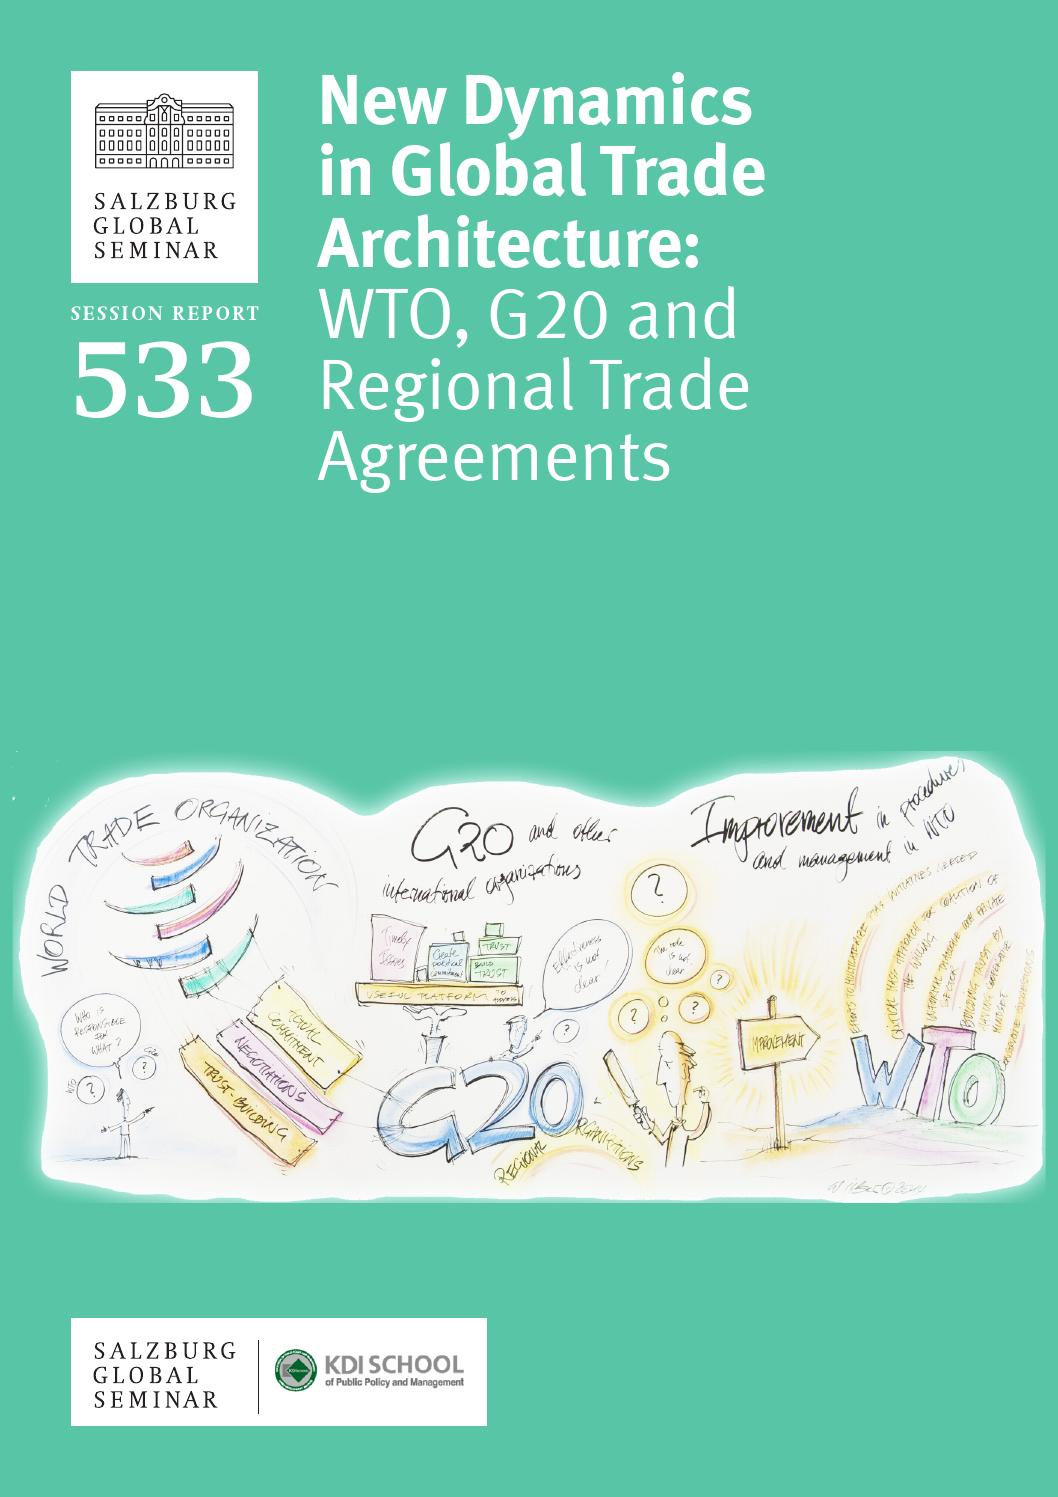 New Dynamics In Global Trade Architecture Wto G20 And Regional